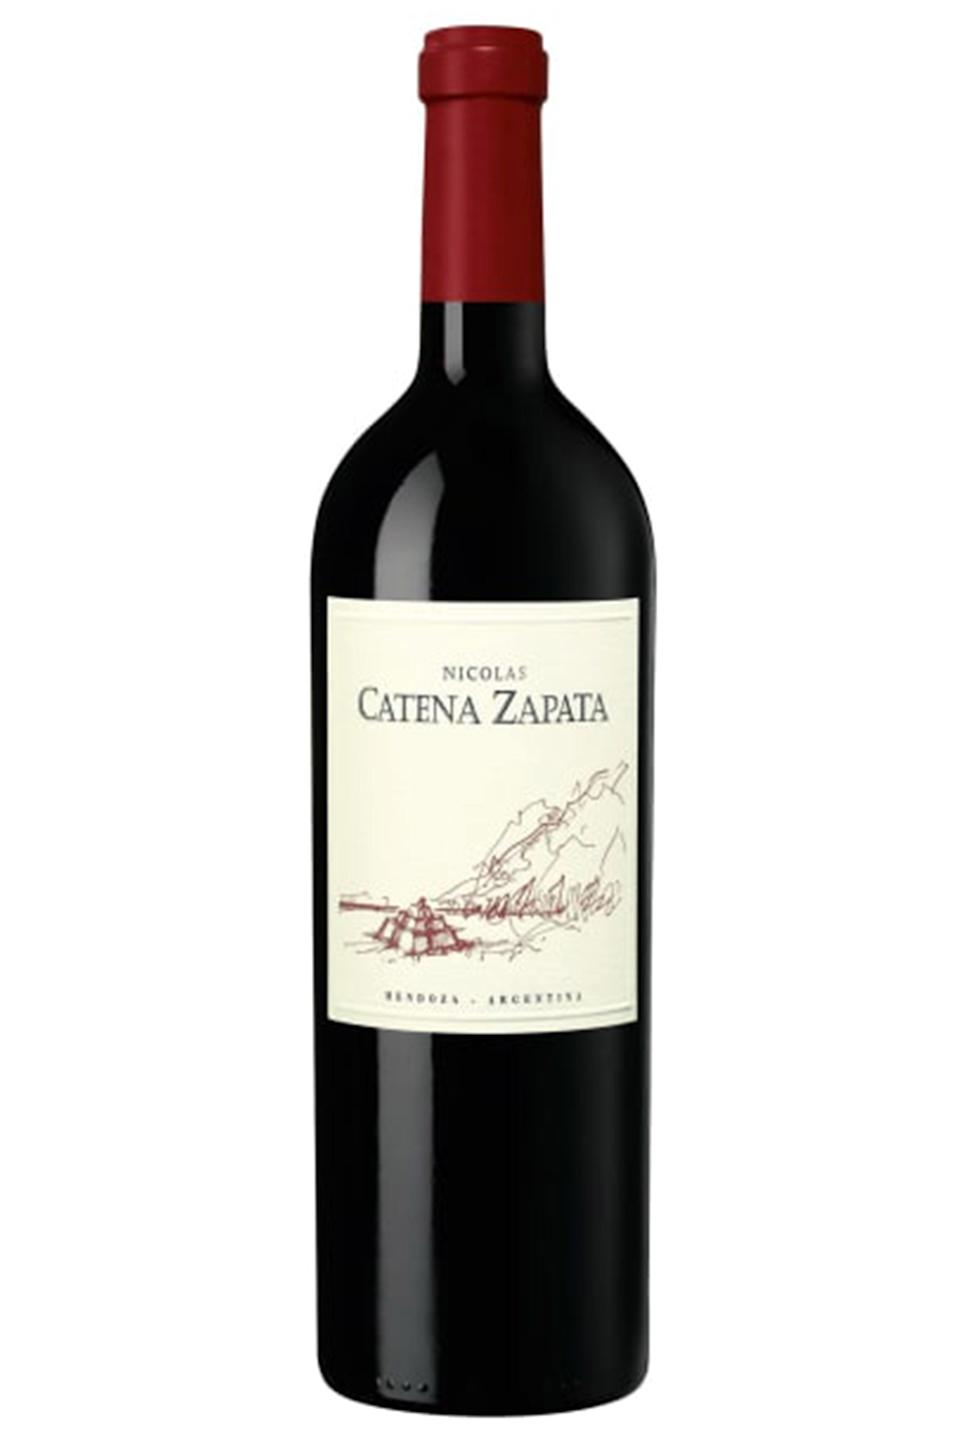 """<p>wine.com</p><p><strong>$99.99</strong></p><p><a href=""""https://go.redirectingat.com?id=74968X1596630&url=https%3A%2F%2Fwww.wine.com%2Fproduct%2Fcatena-zapata-nicolas-2015%2F525589&sref=https%3A%2F%2Fwww.townandcountrymag.com%2Fleisure%2Fdrinks%2Fg32392235%2Fbest-red-wine%2F"""" rel=""""nofollow noopener"""" target=""""_blank"""" data-ylk=""""slk:Shop Now"""" class=""""link rapid-noclick-resp"""">Shop Now</a></p><p>""""The Catena family is renowned in Argentina for all they have done for the industry in the country,"""" Osborn says. """"Their wines are the best of the best. The Catena Zapata Nicolas is a perfect Argentine blend of Cabernet Sauvignon and Malbec. It shows off the energy and power the red wines can produce here.""""</p>"""